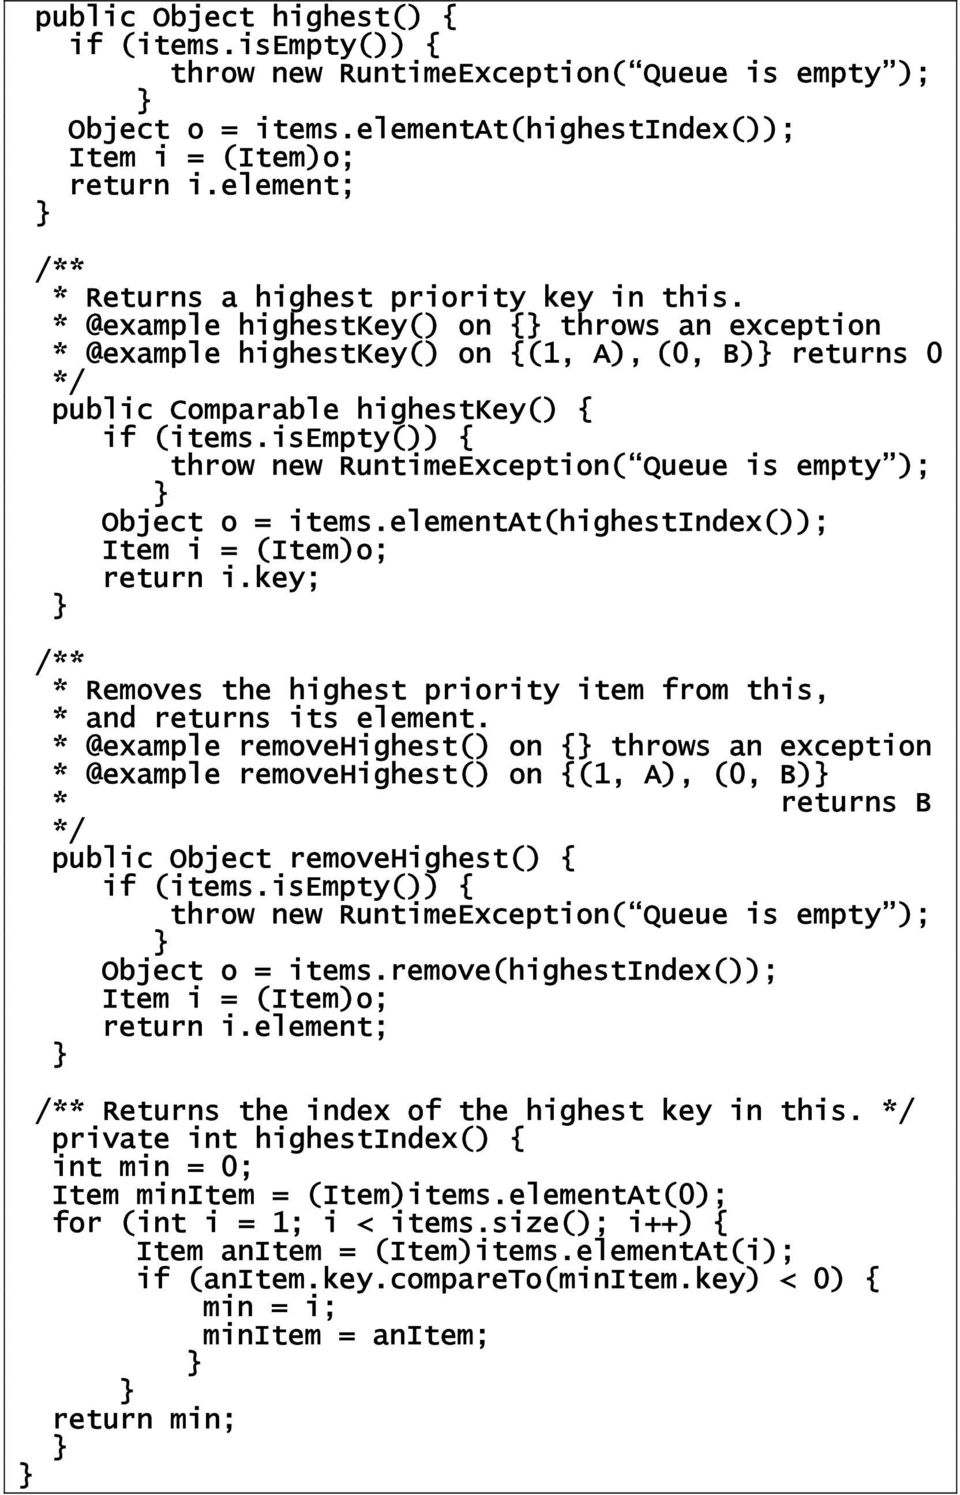 isempty()) { throw new RuntimeException( Queue is empty ); Object o = items.elementat(highestindex()); Item i = (Item)o; return i.